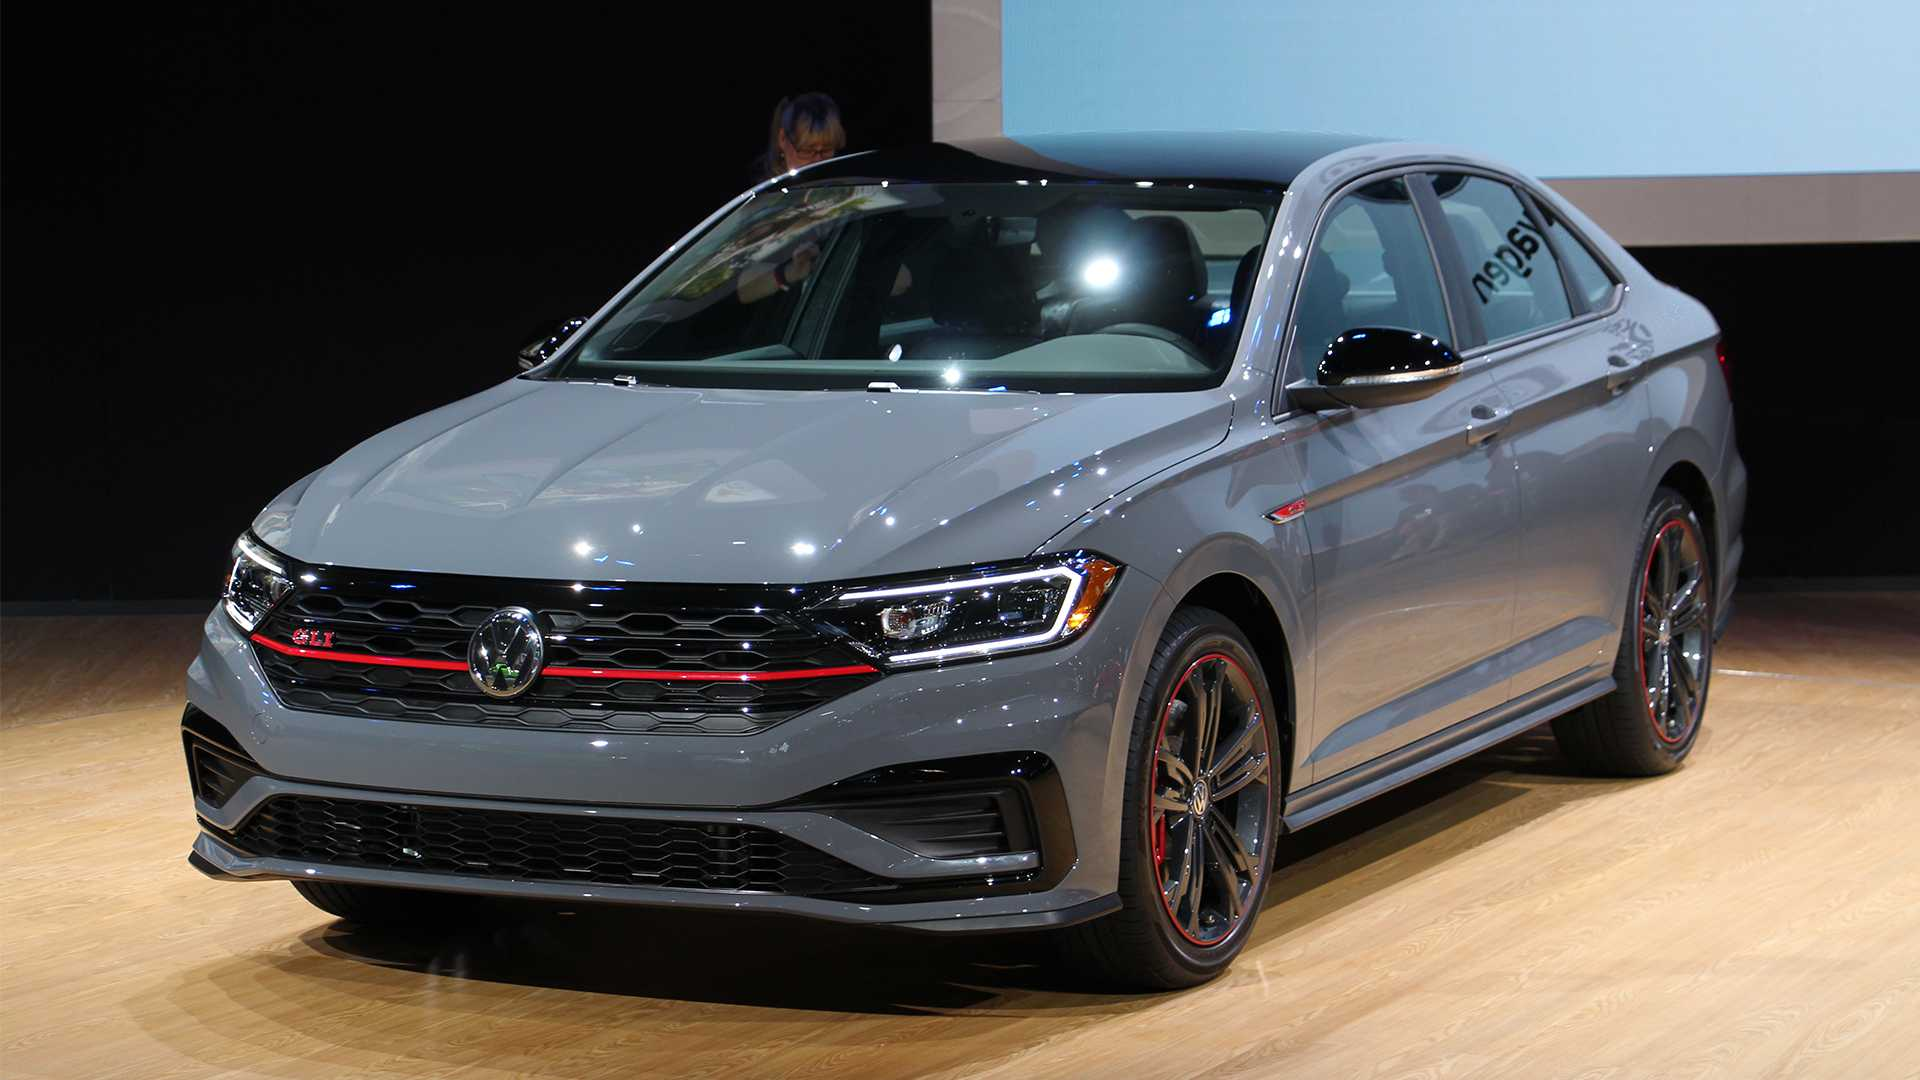 45 The Best 2020 Vw Jetta Gli New Model And Performance